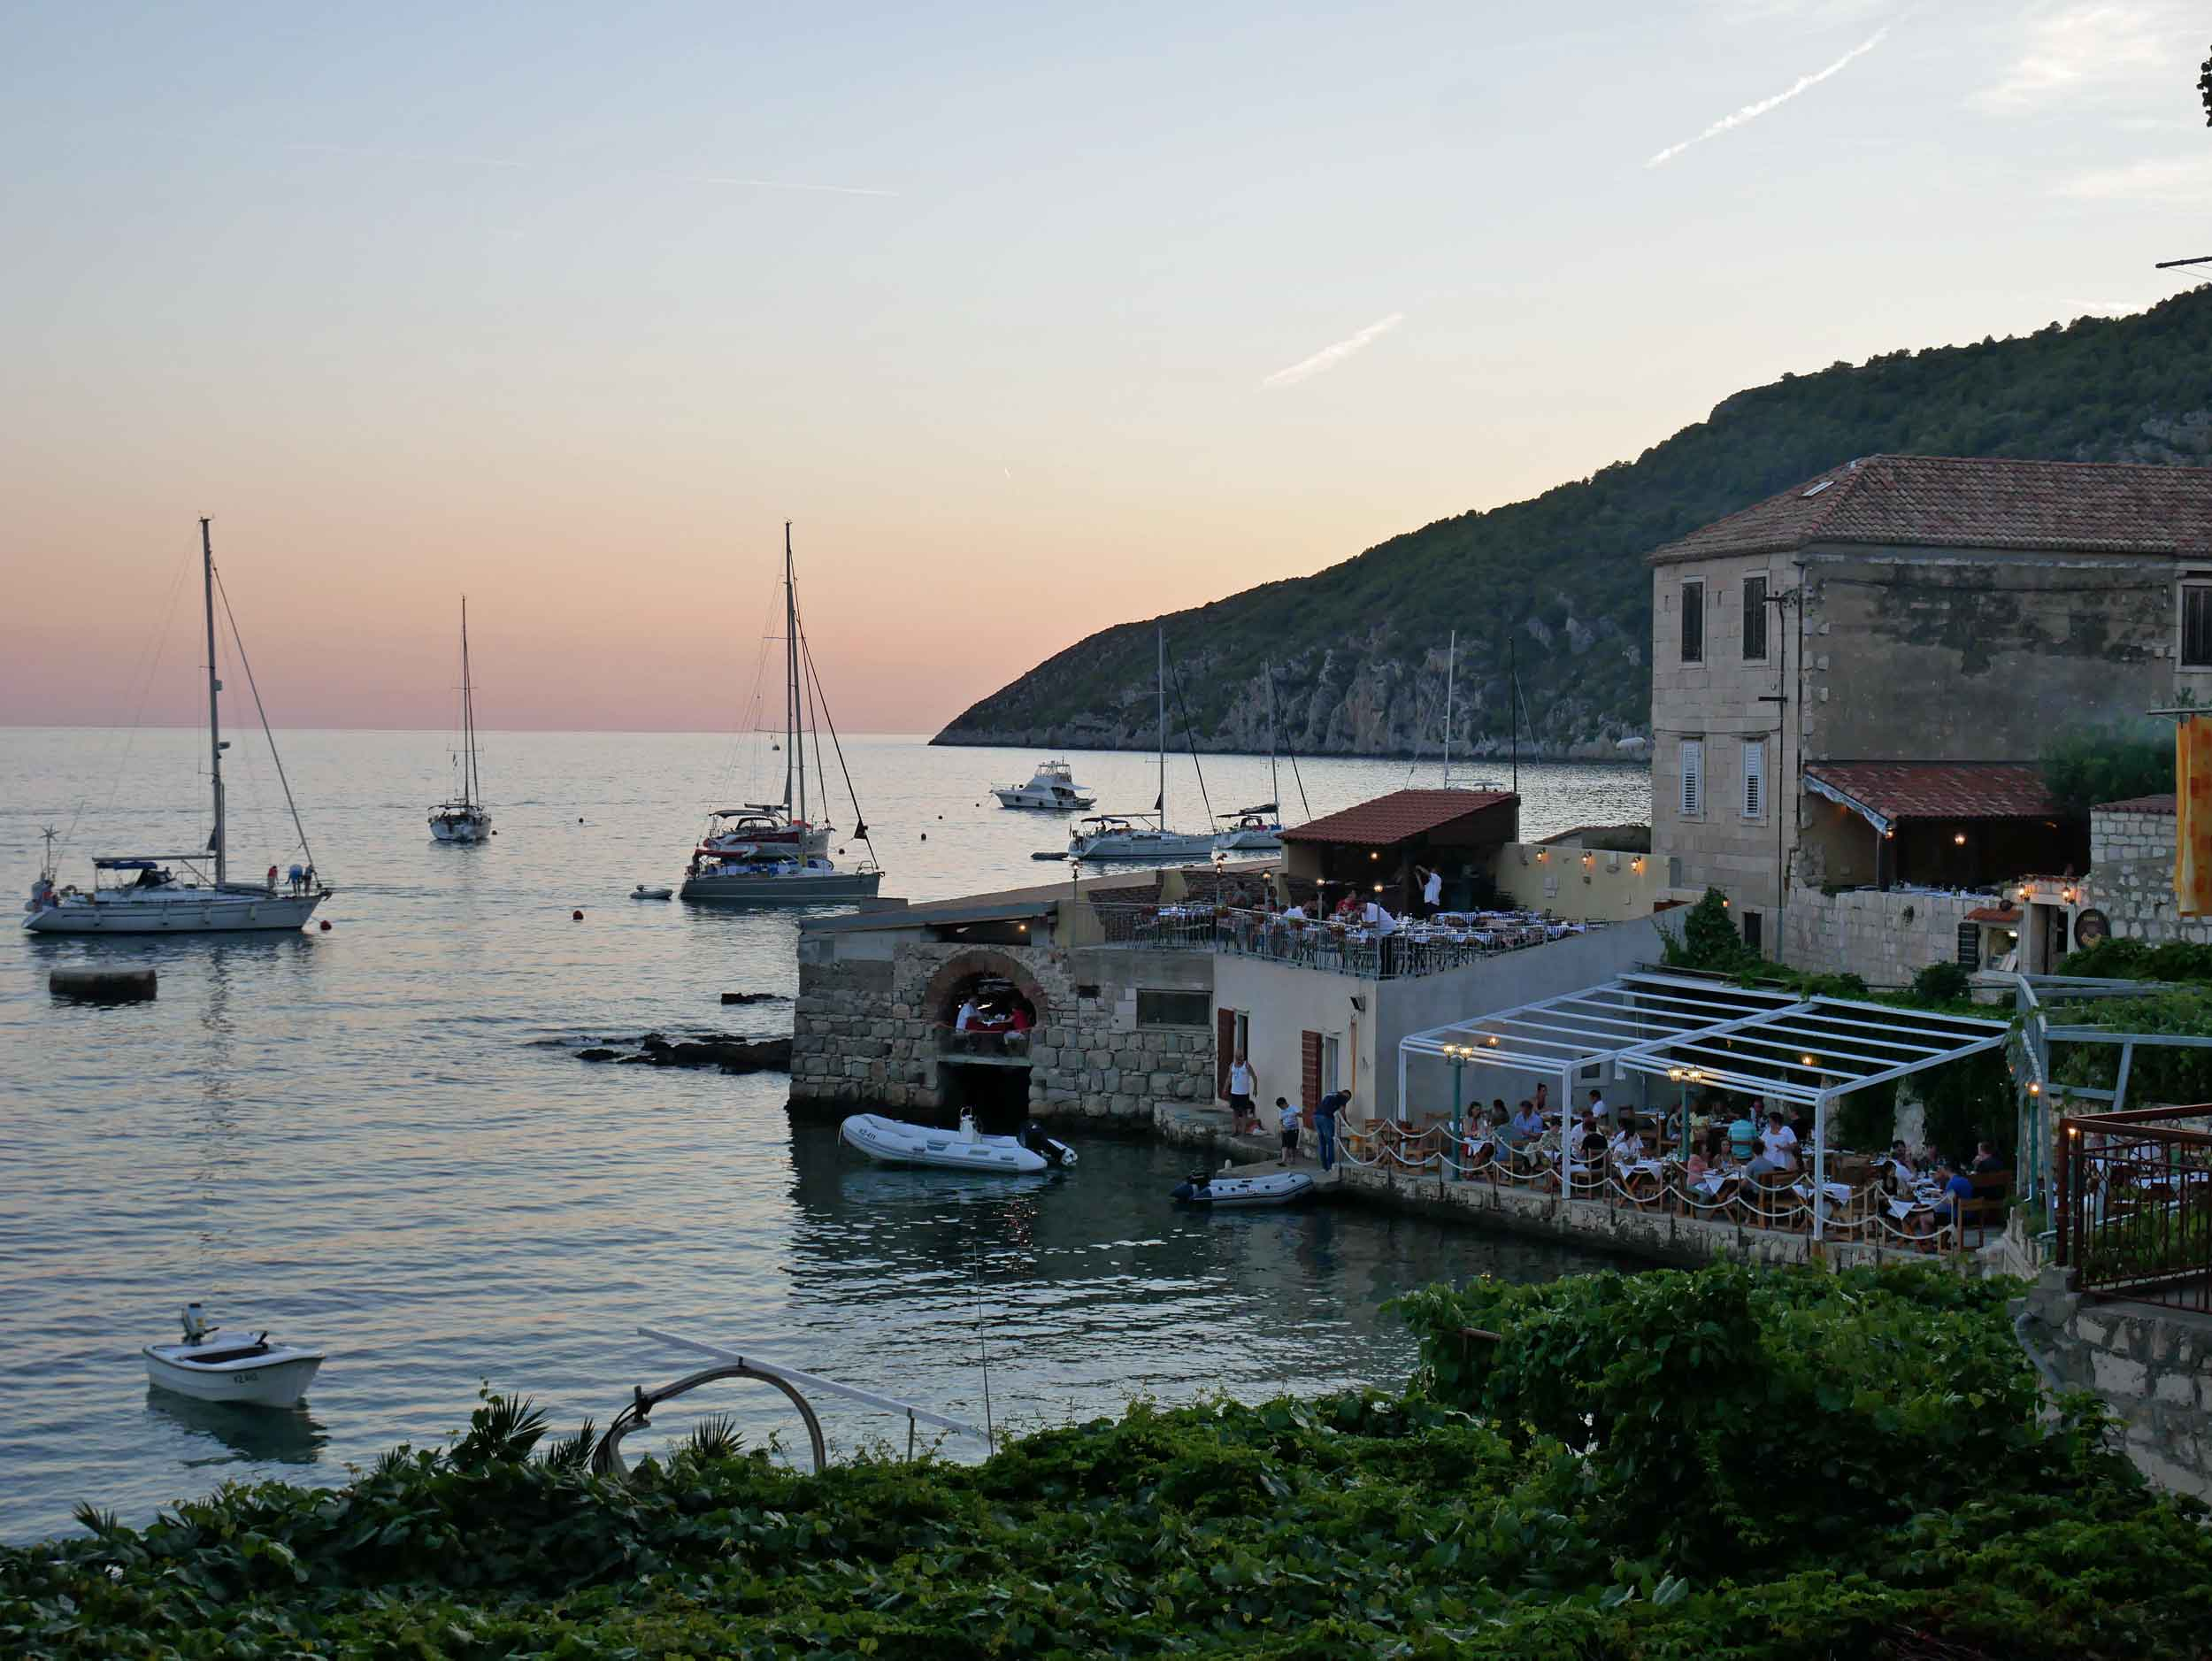 Sunsets over the bay turned this old Croatian fishing village orange.